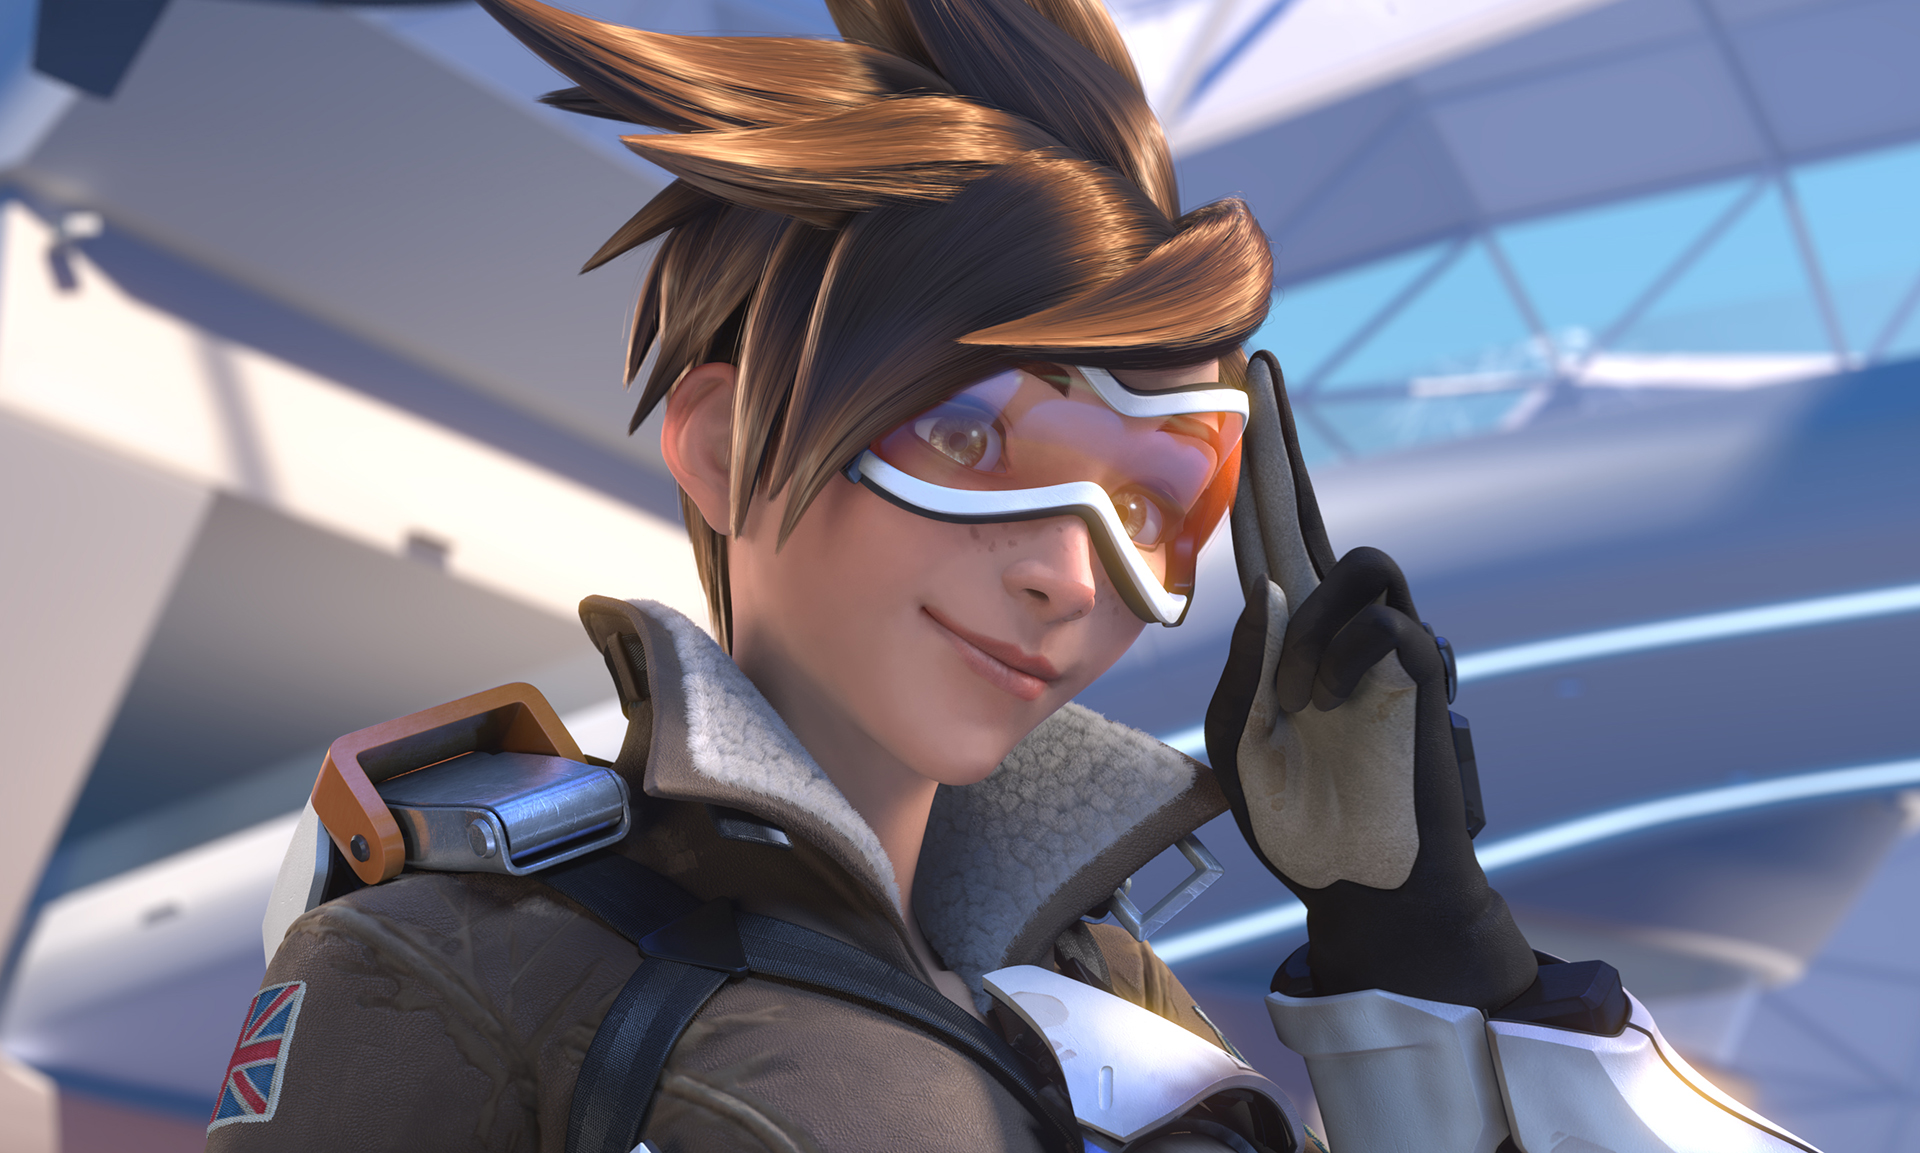 41819770001_4830762324001_Tracer-Cropped-01